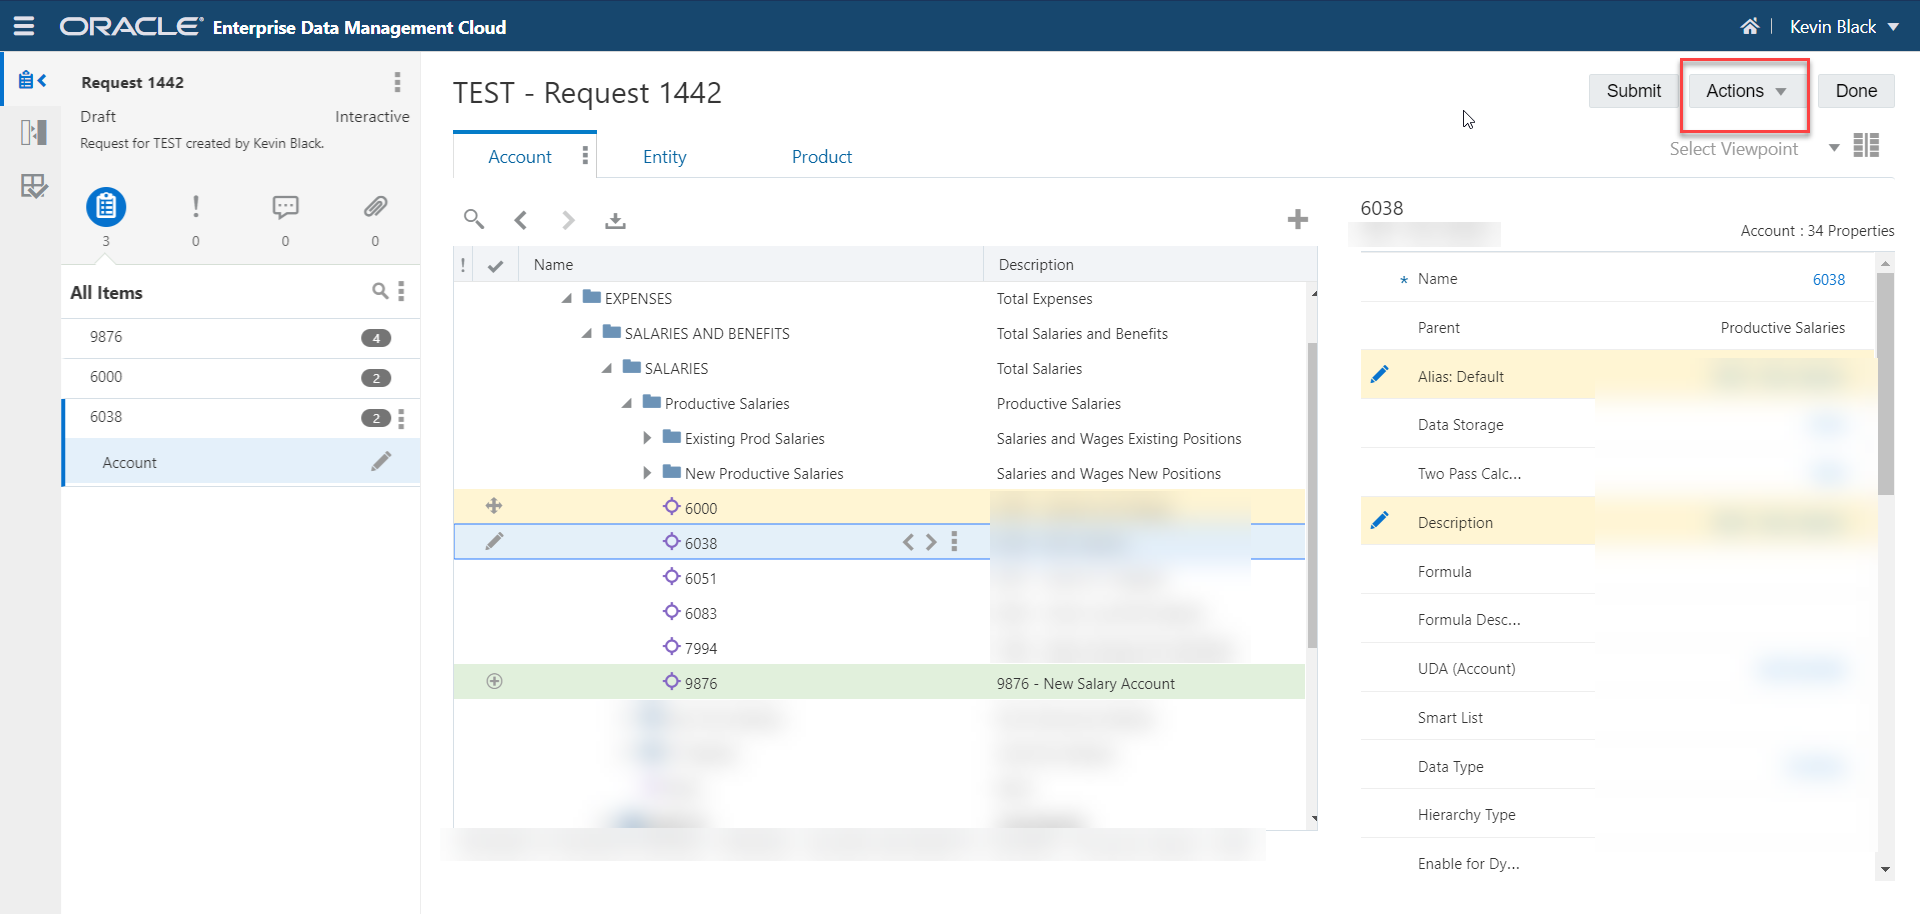 EDMCS and Data Governance – Part 2 - Image 6